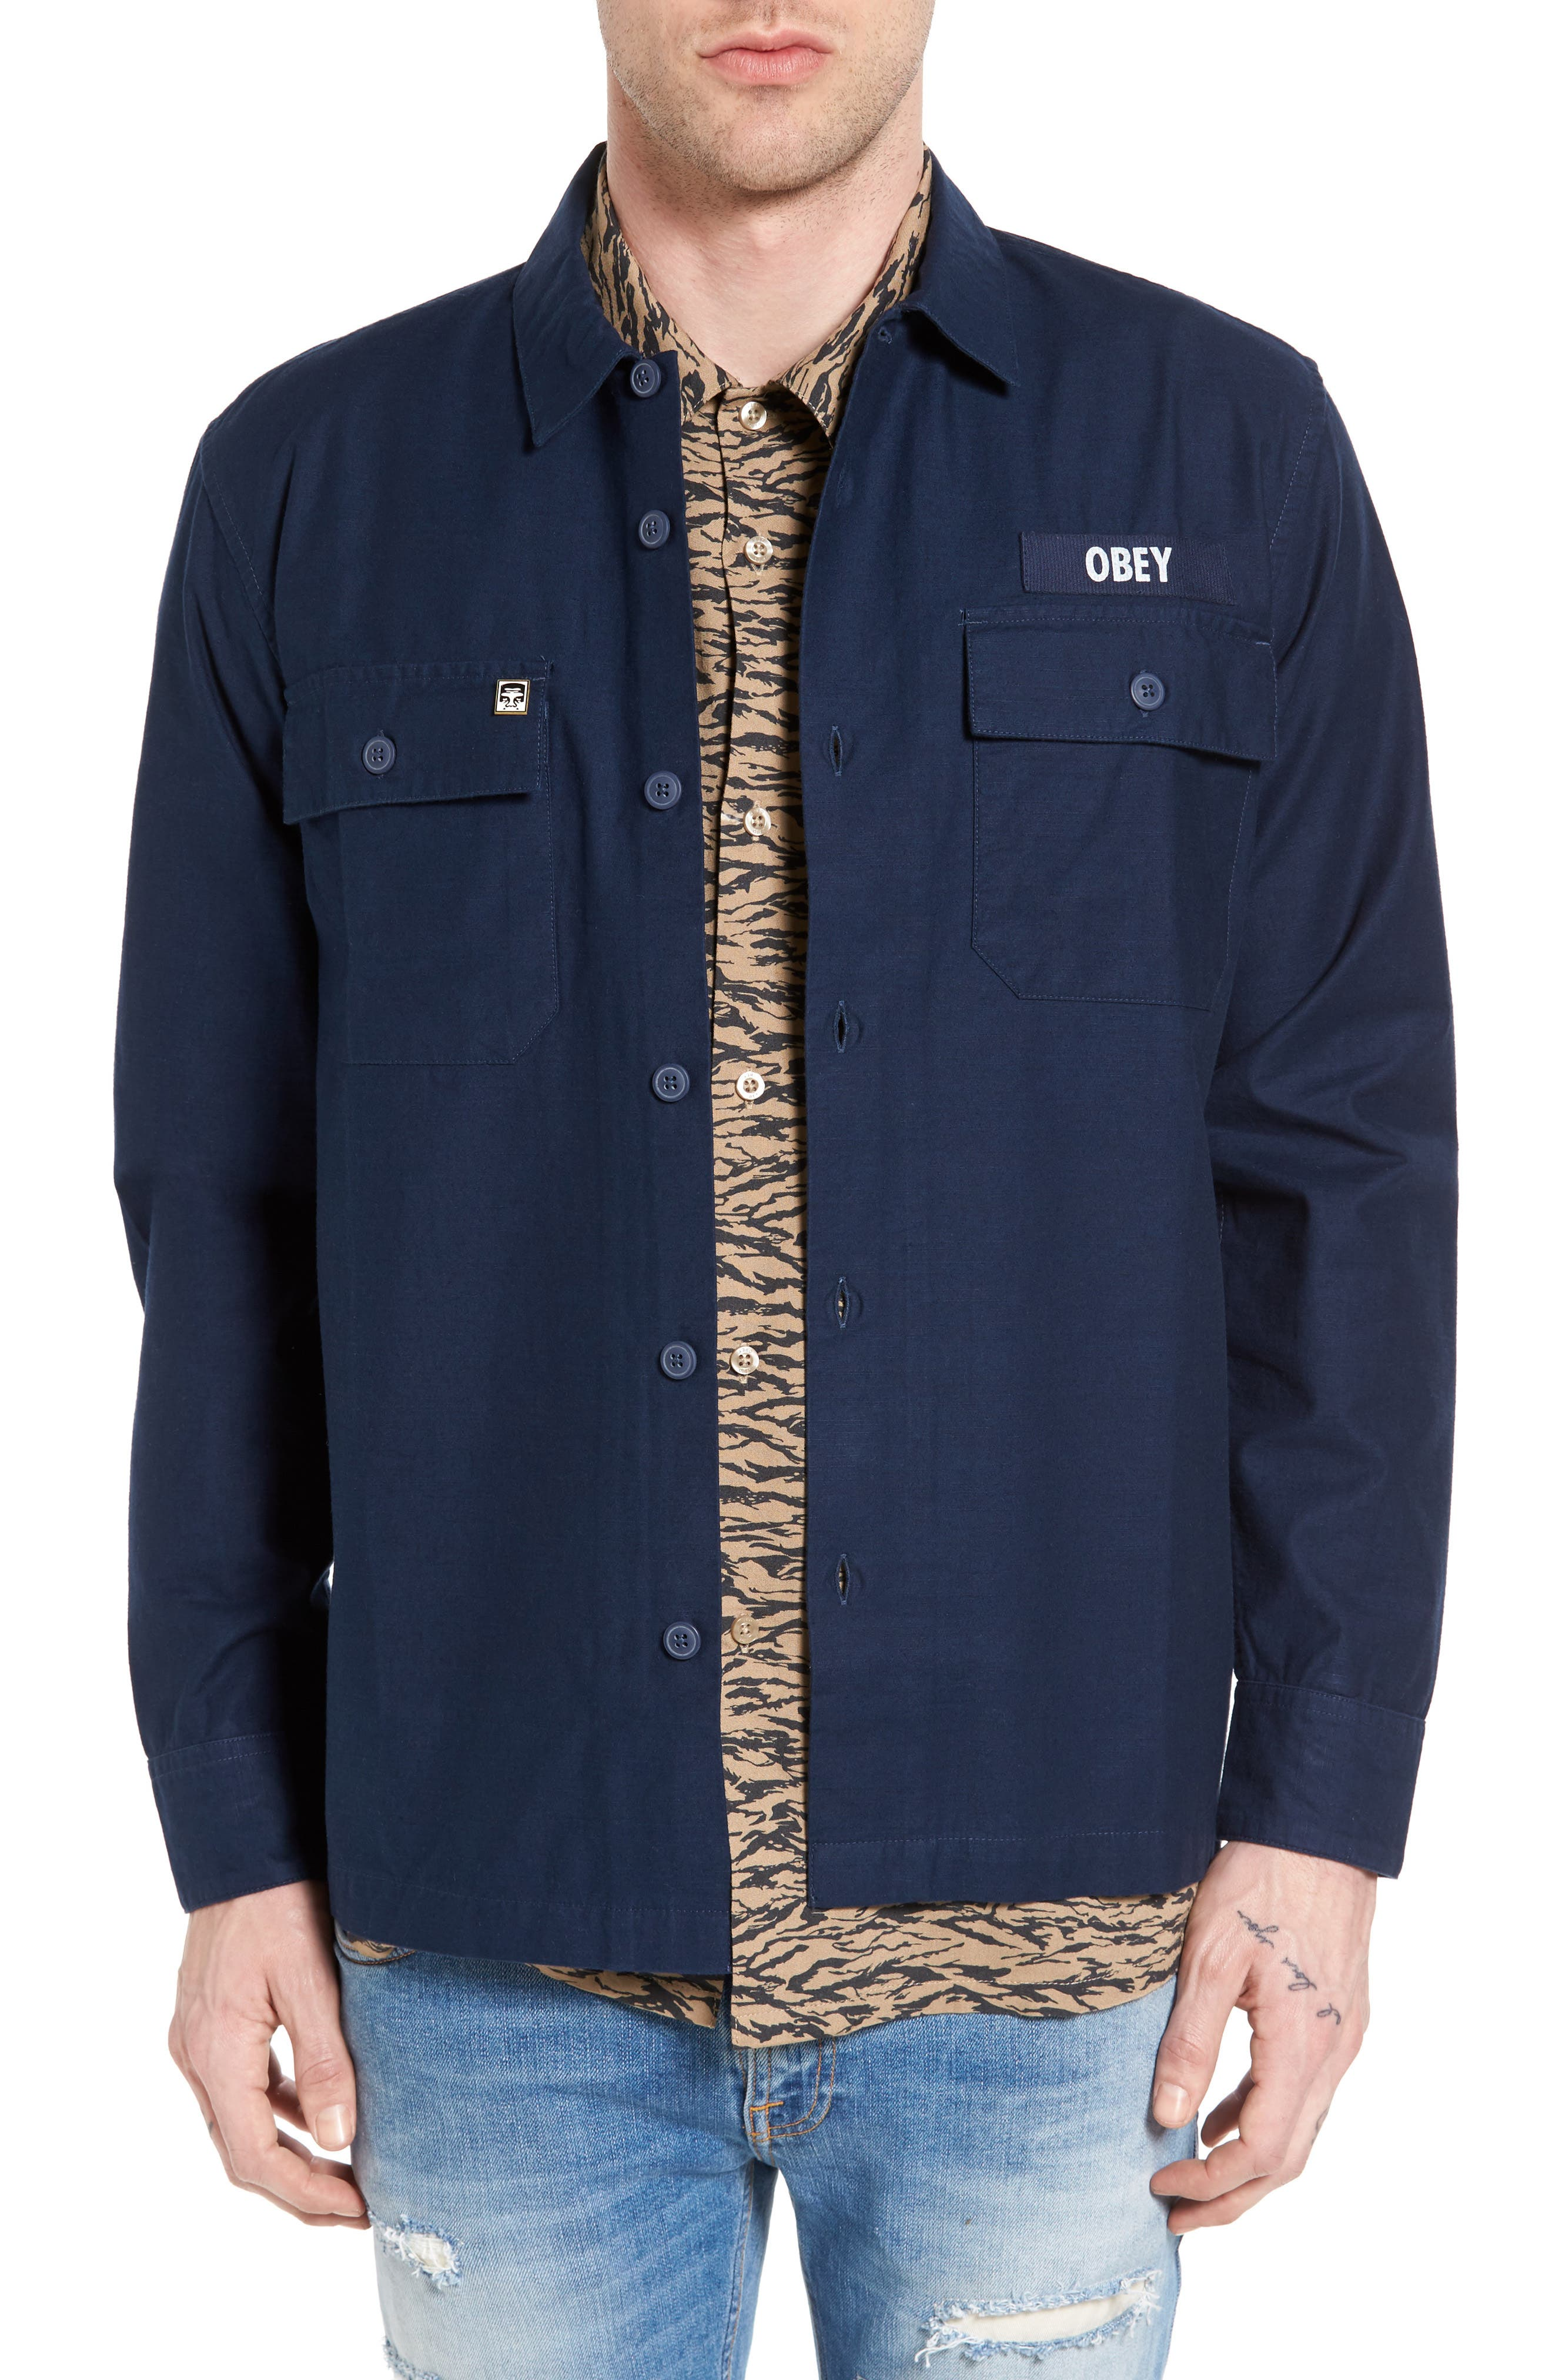 OBEY Mission Military Shirt Jacket